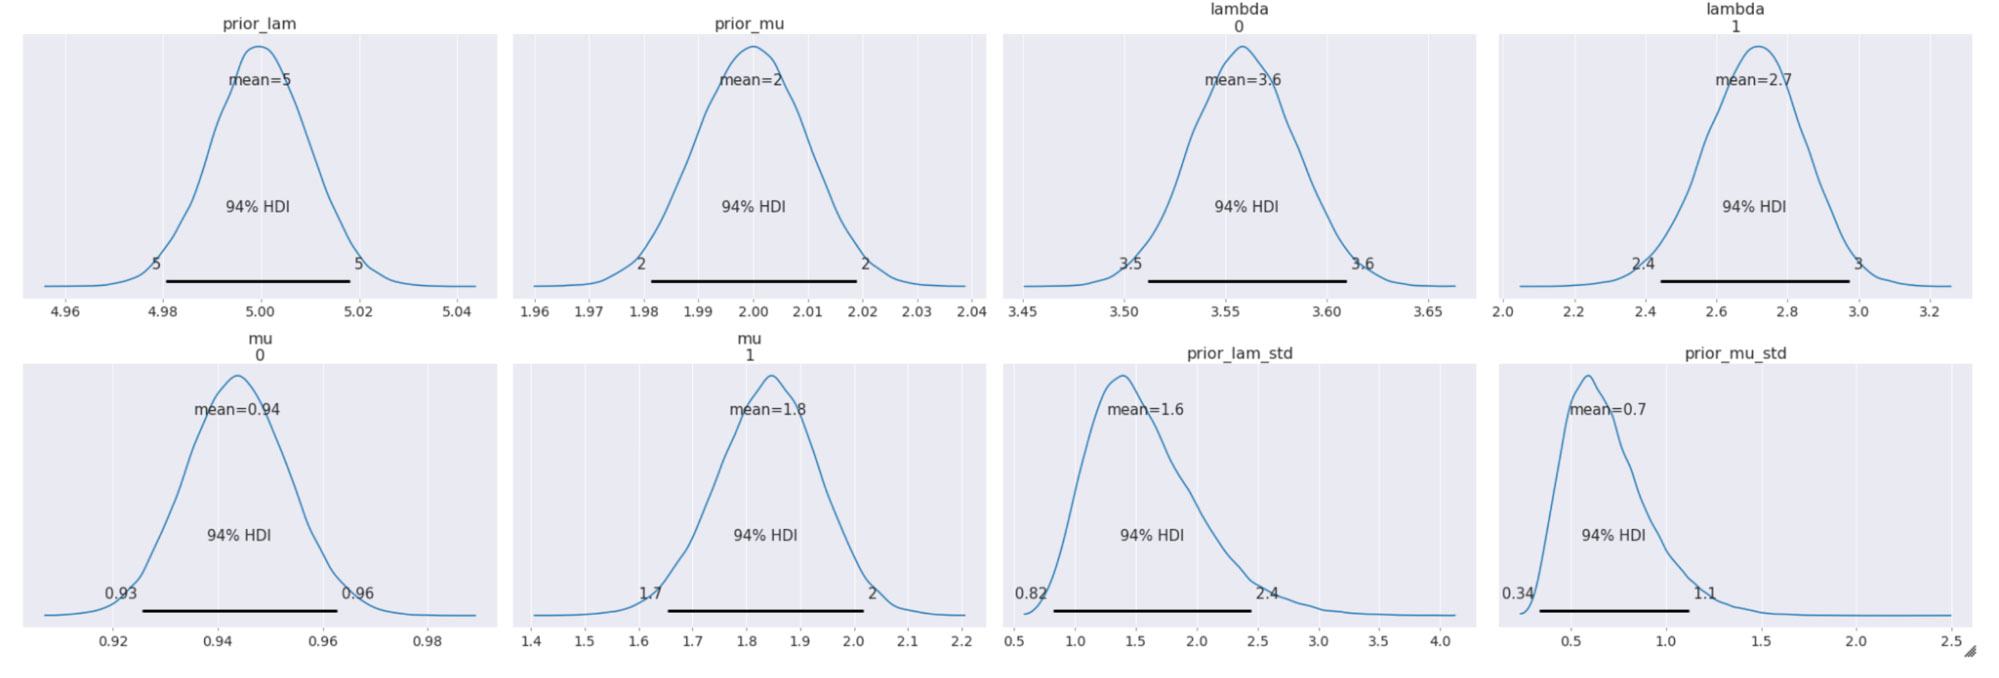 Posterior distributions of the variables with the Highest Density Intervals (HDI)